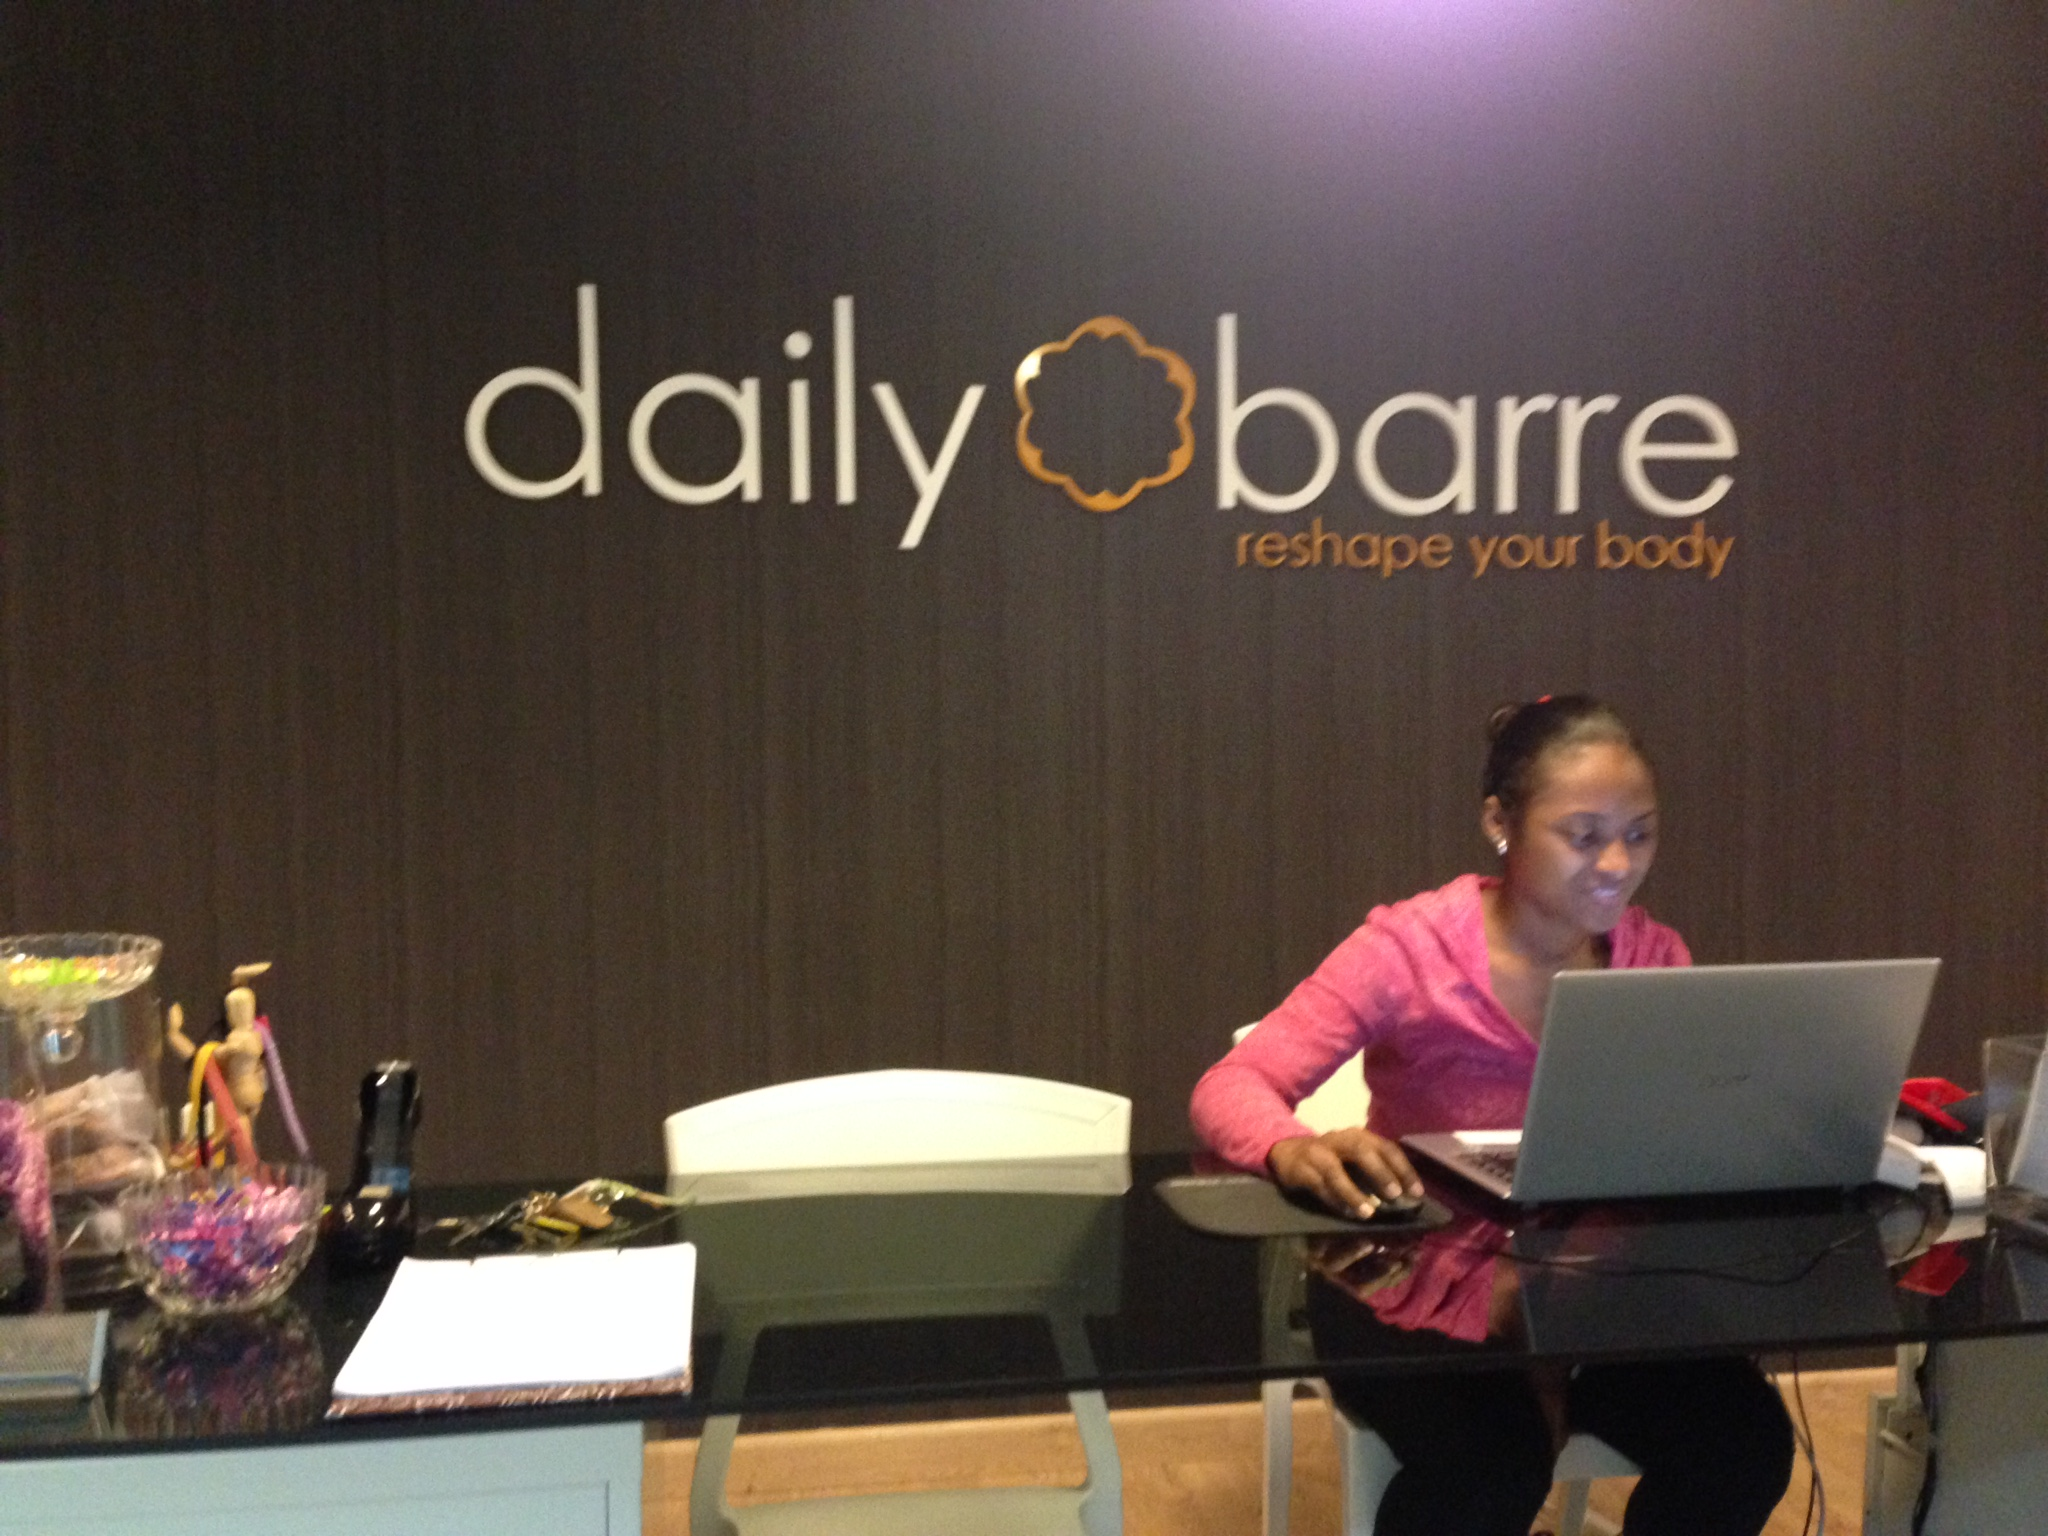 Welcome to the Daily Barre